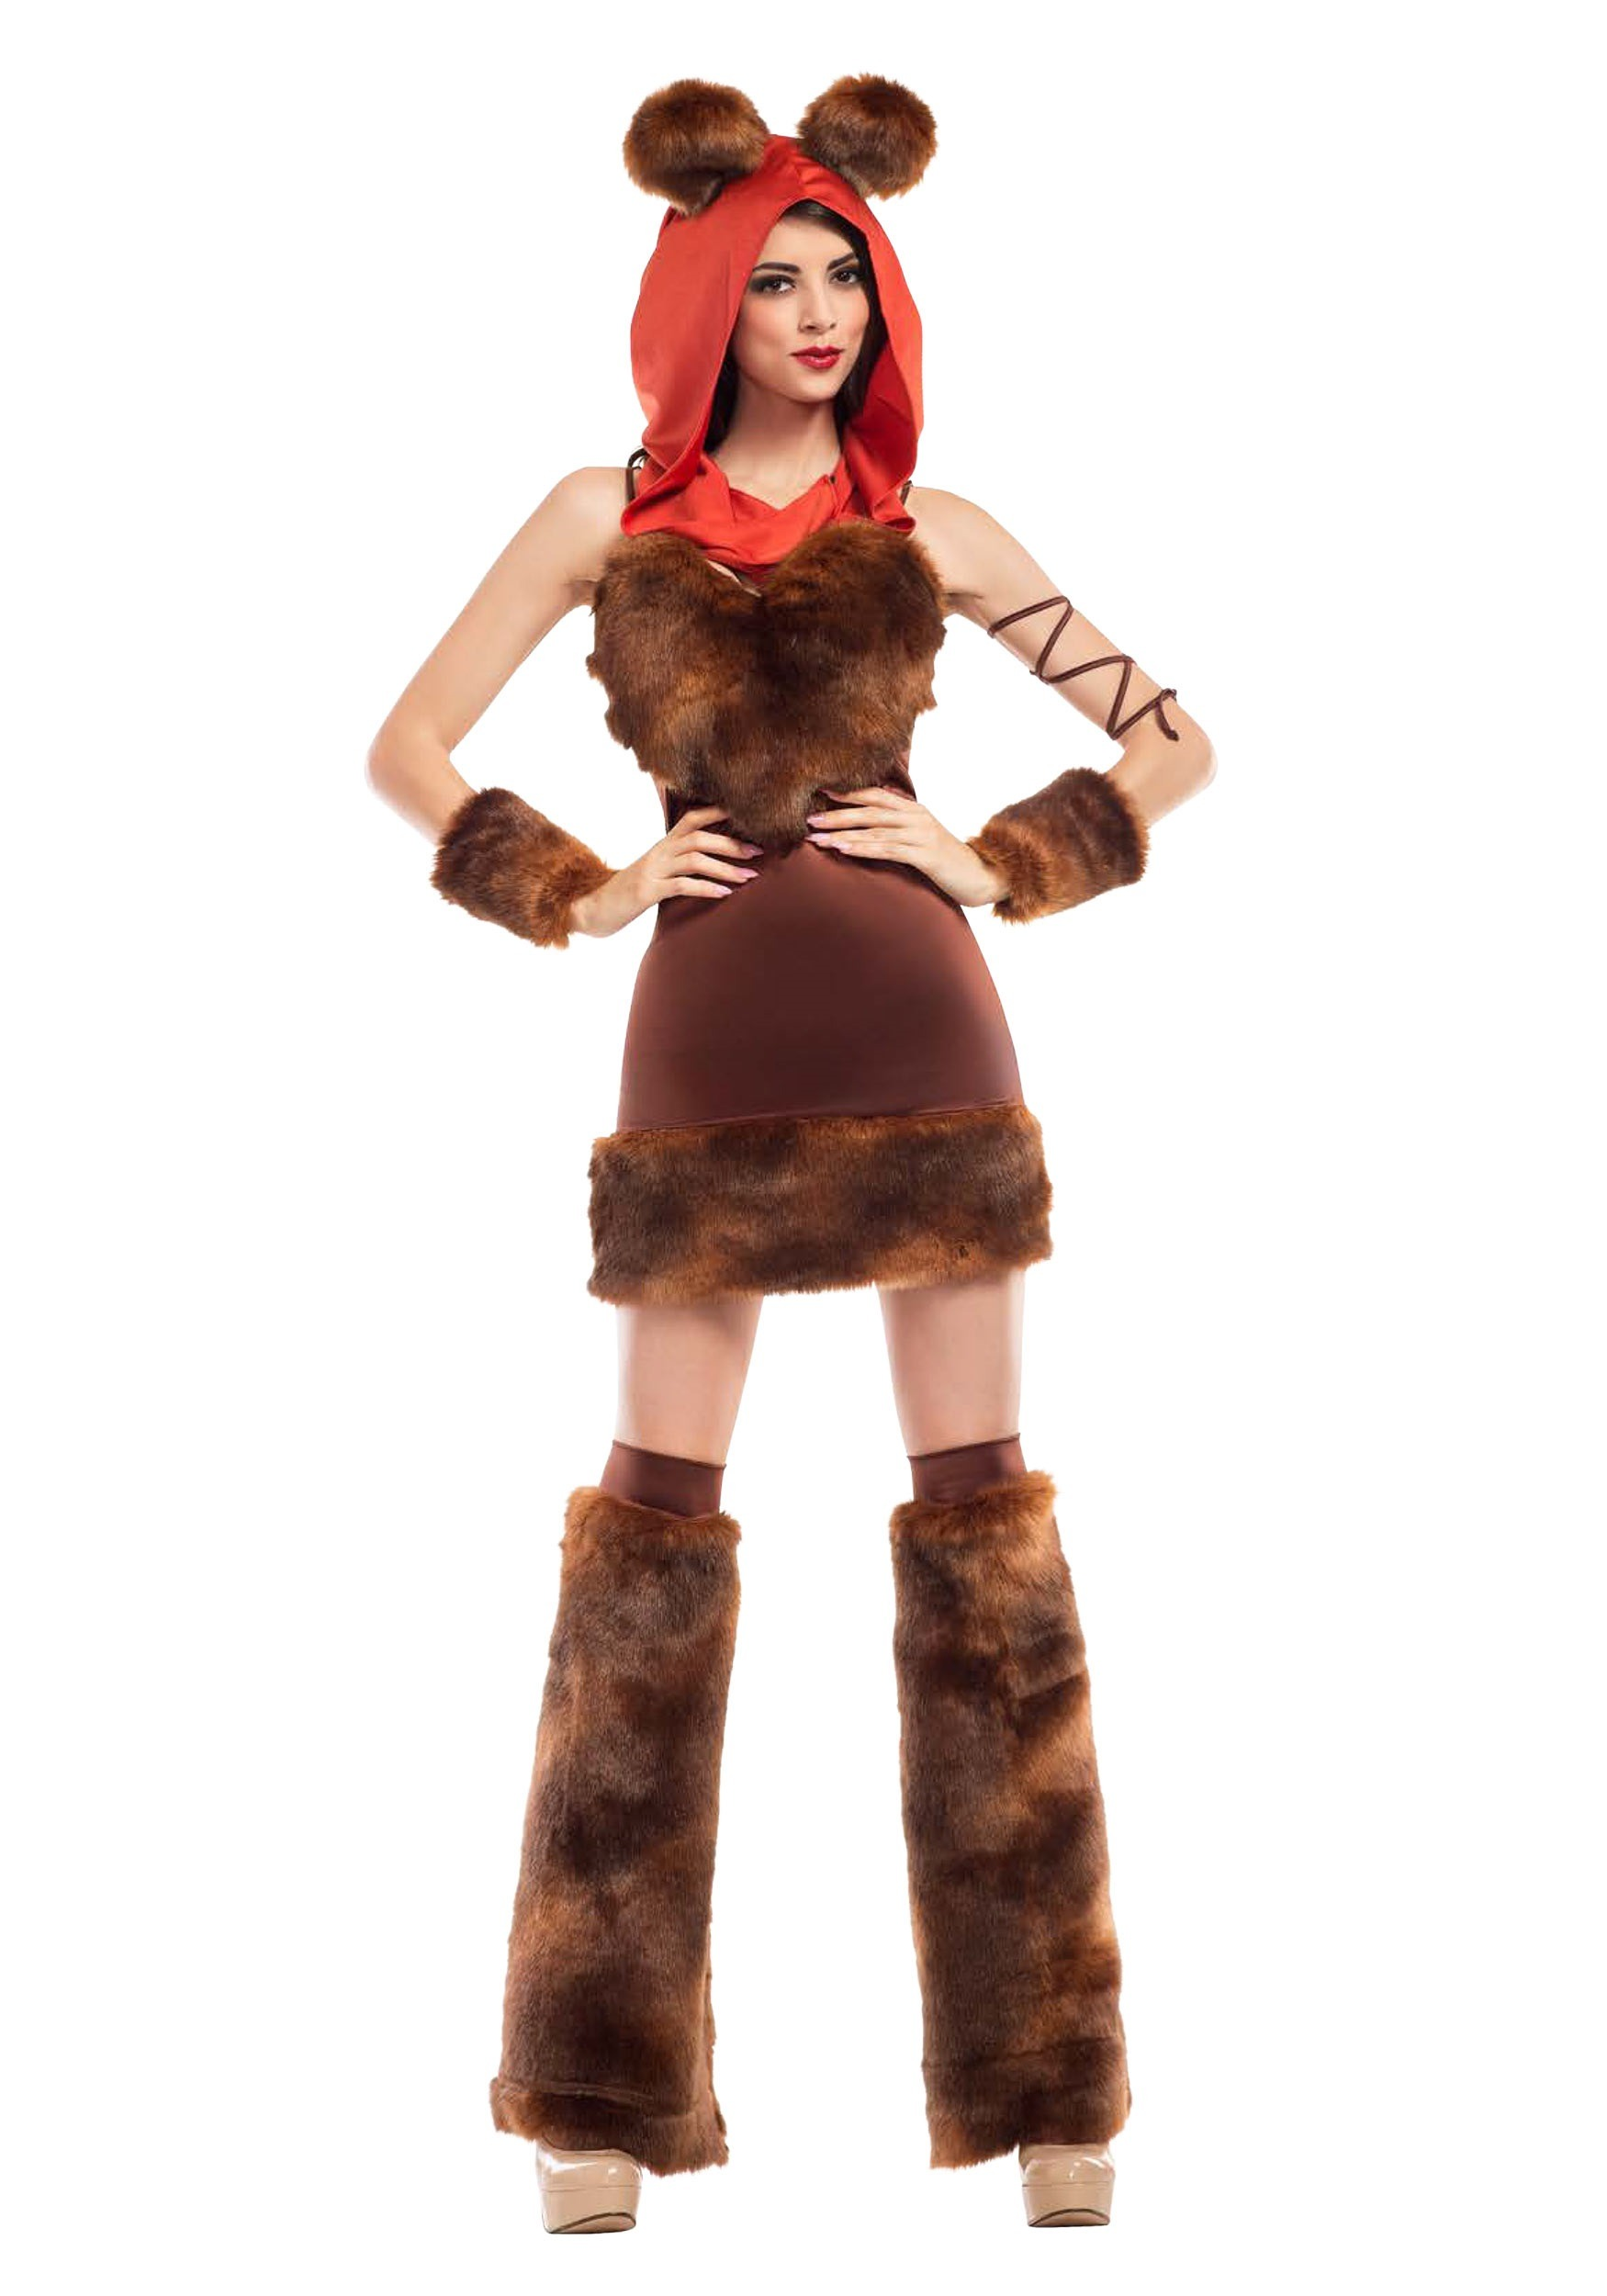 star wars ewok costumes for kids u0026 dogs star wars ewok costumes for kids dogs com